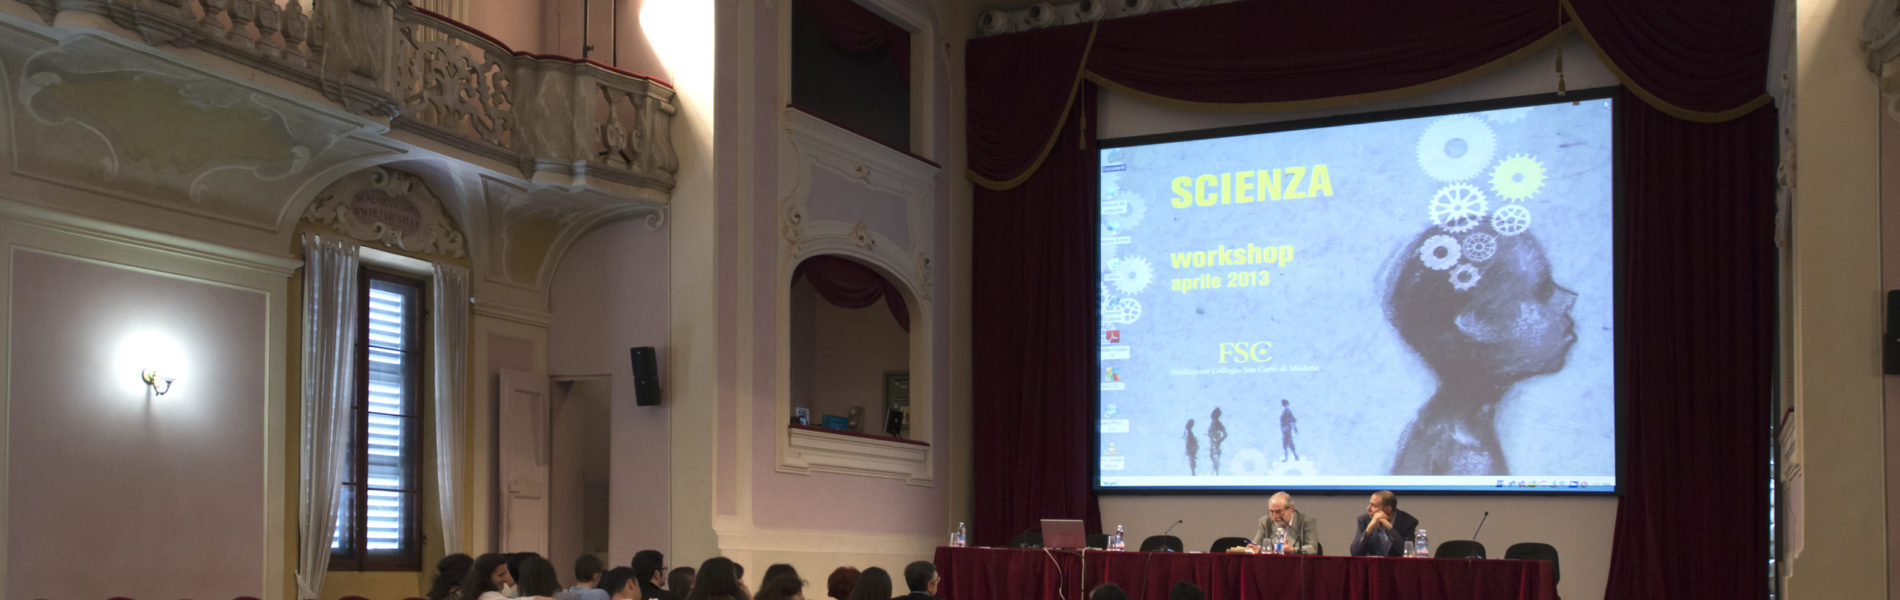 FSC_Scienza_Work_2013_086